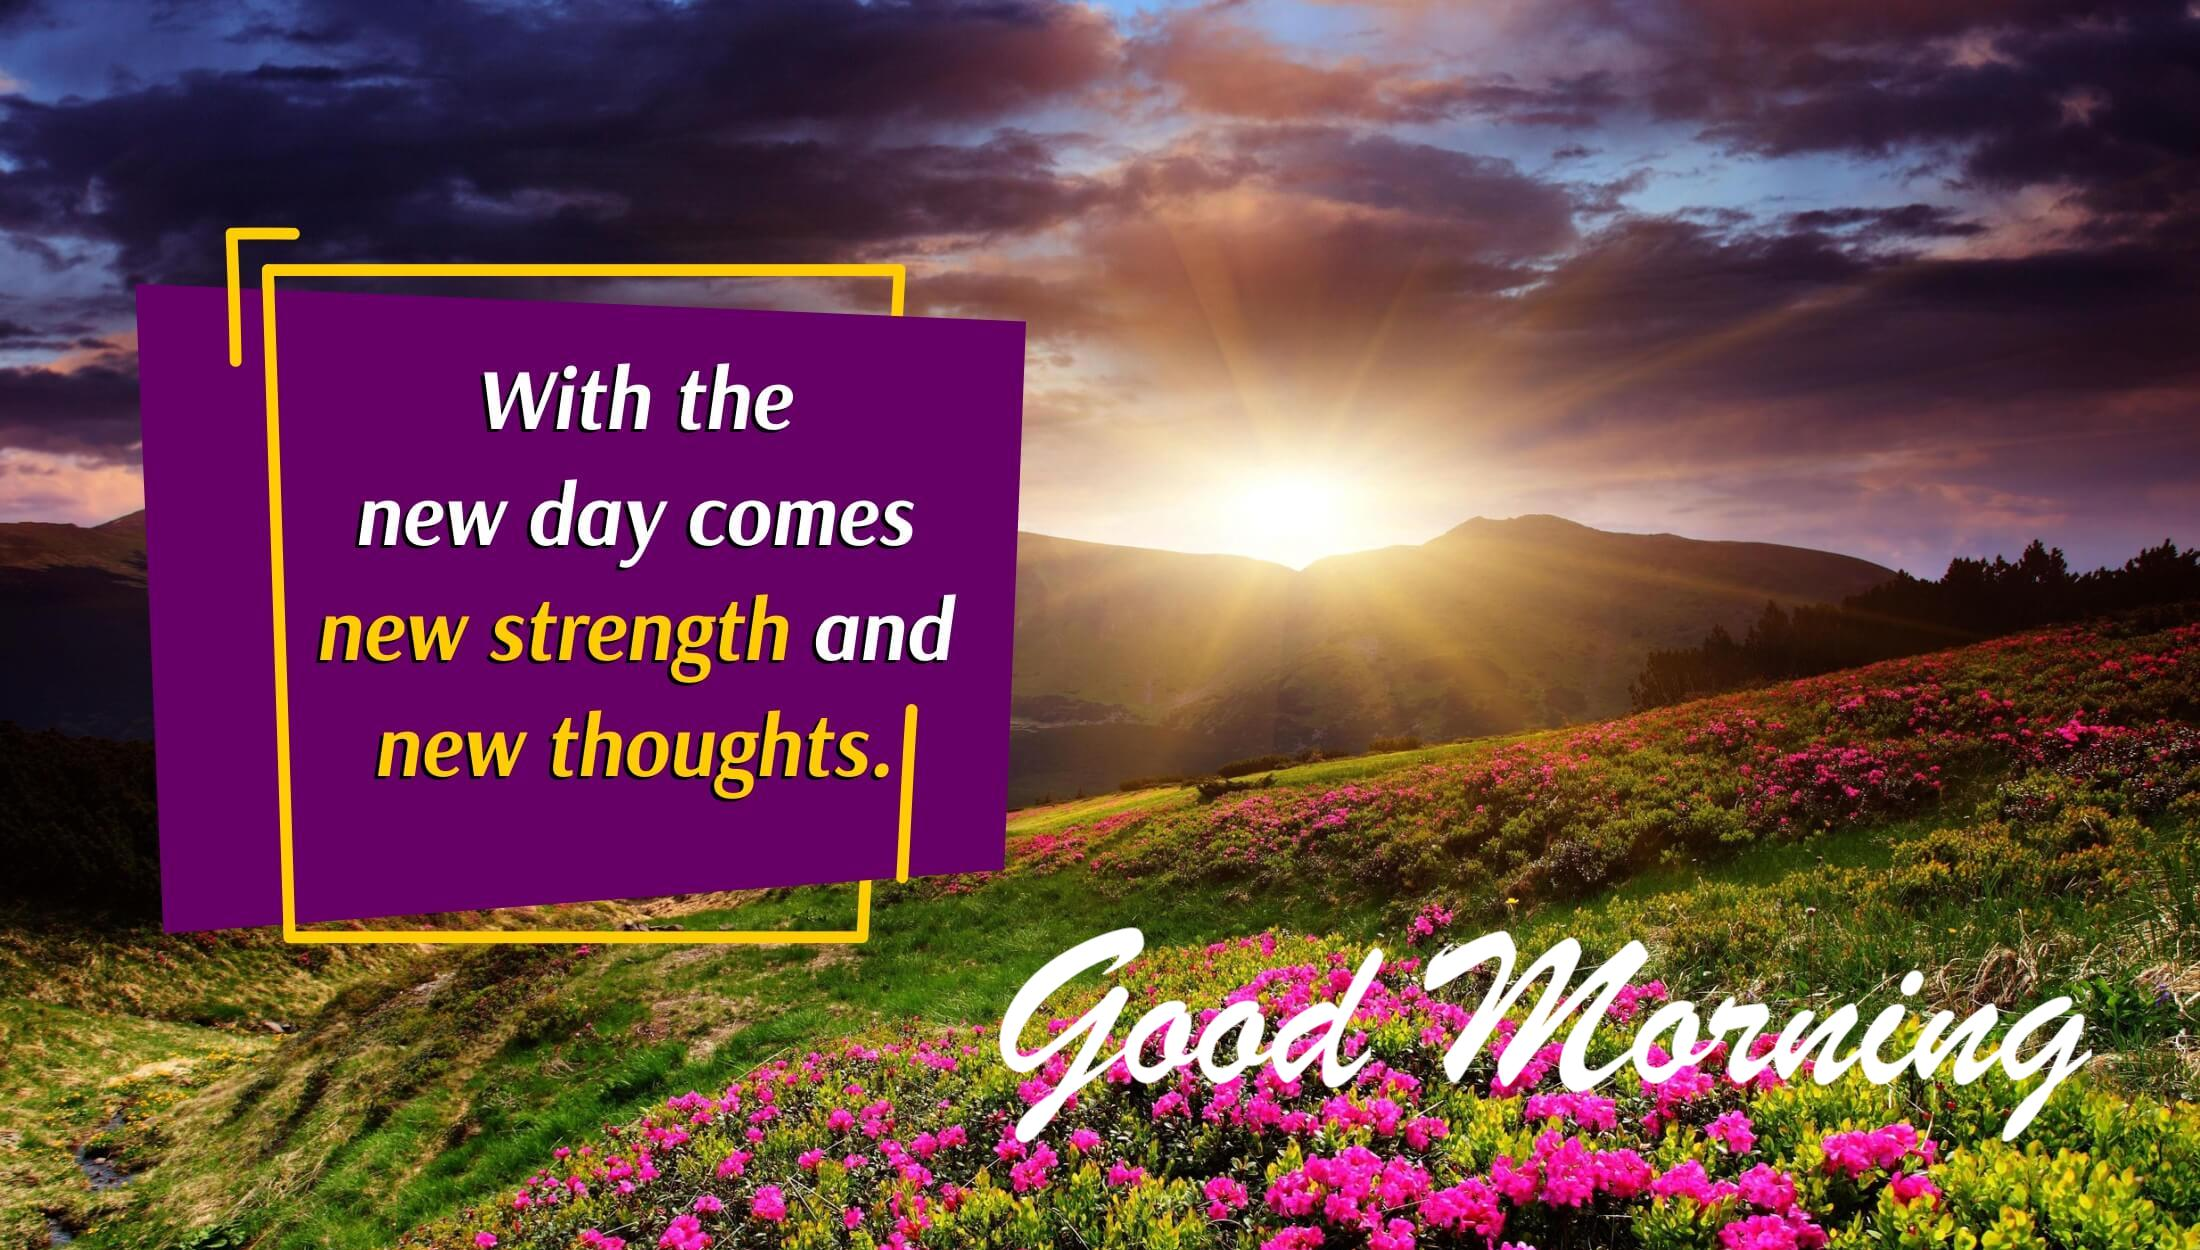 Greetings of Good Morning